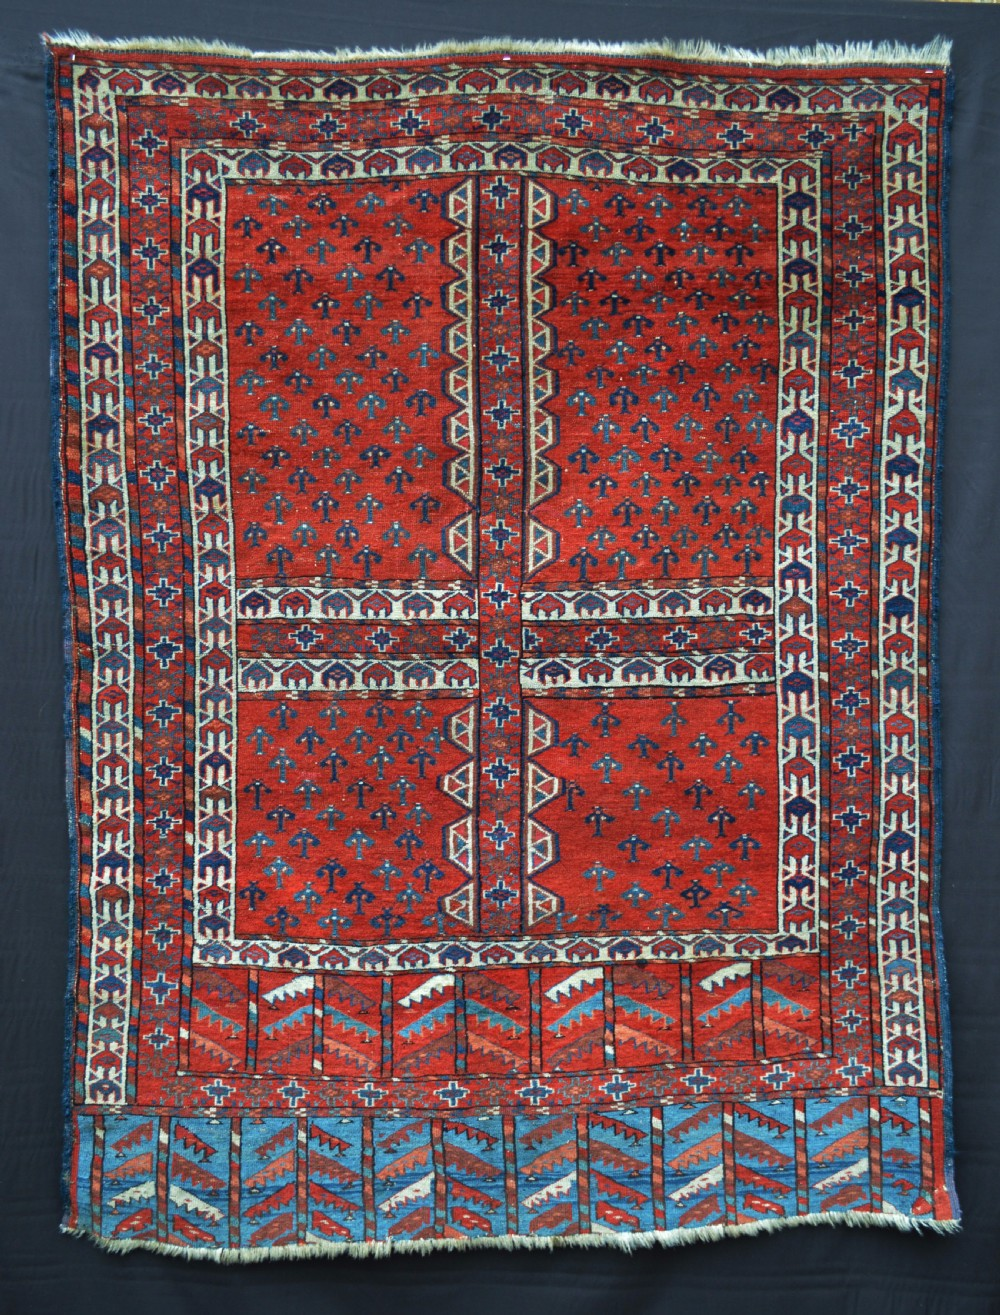 antique engsi yurtdoor rug yomut turkmen tribes transcaspian steppes turkmenistan central asia